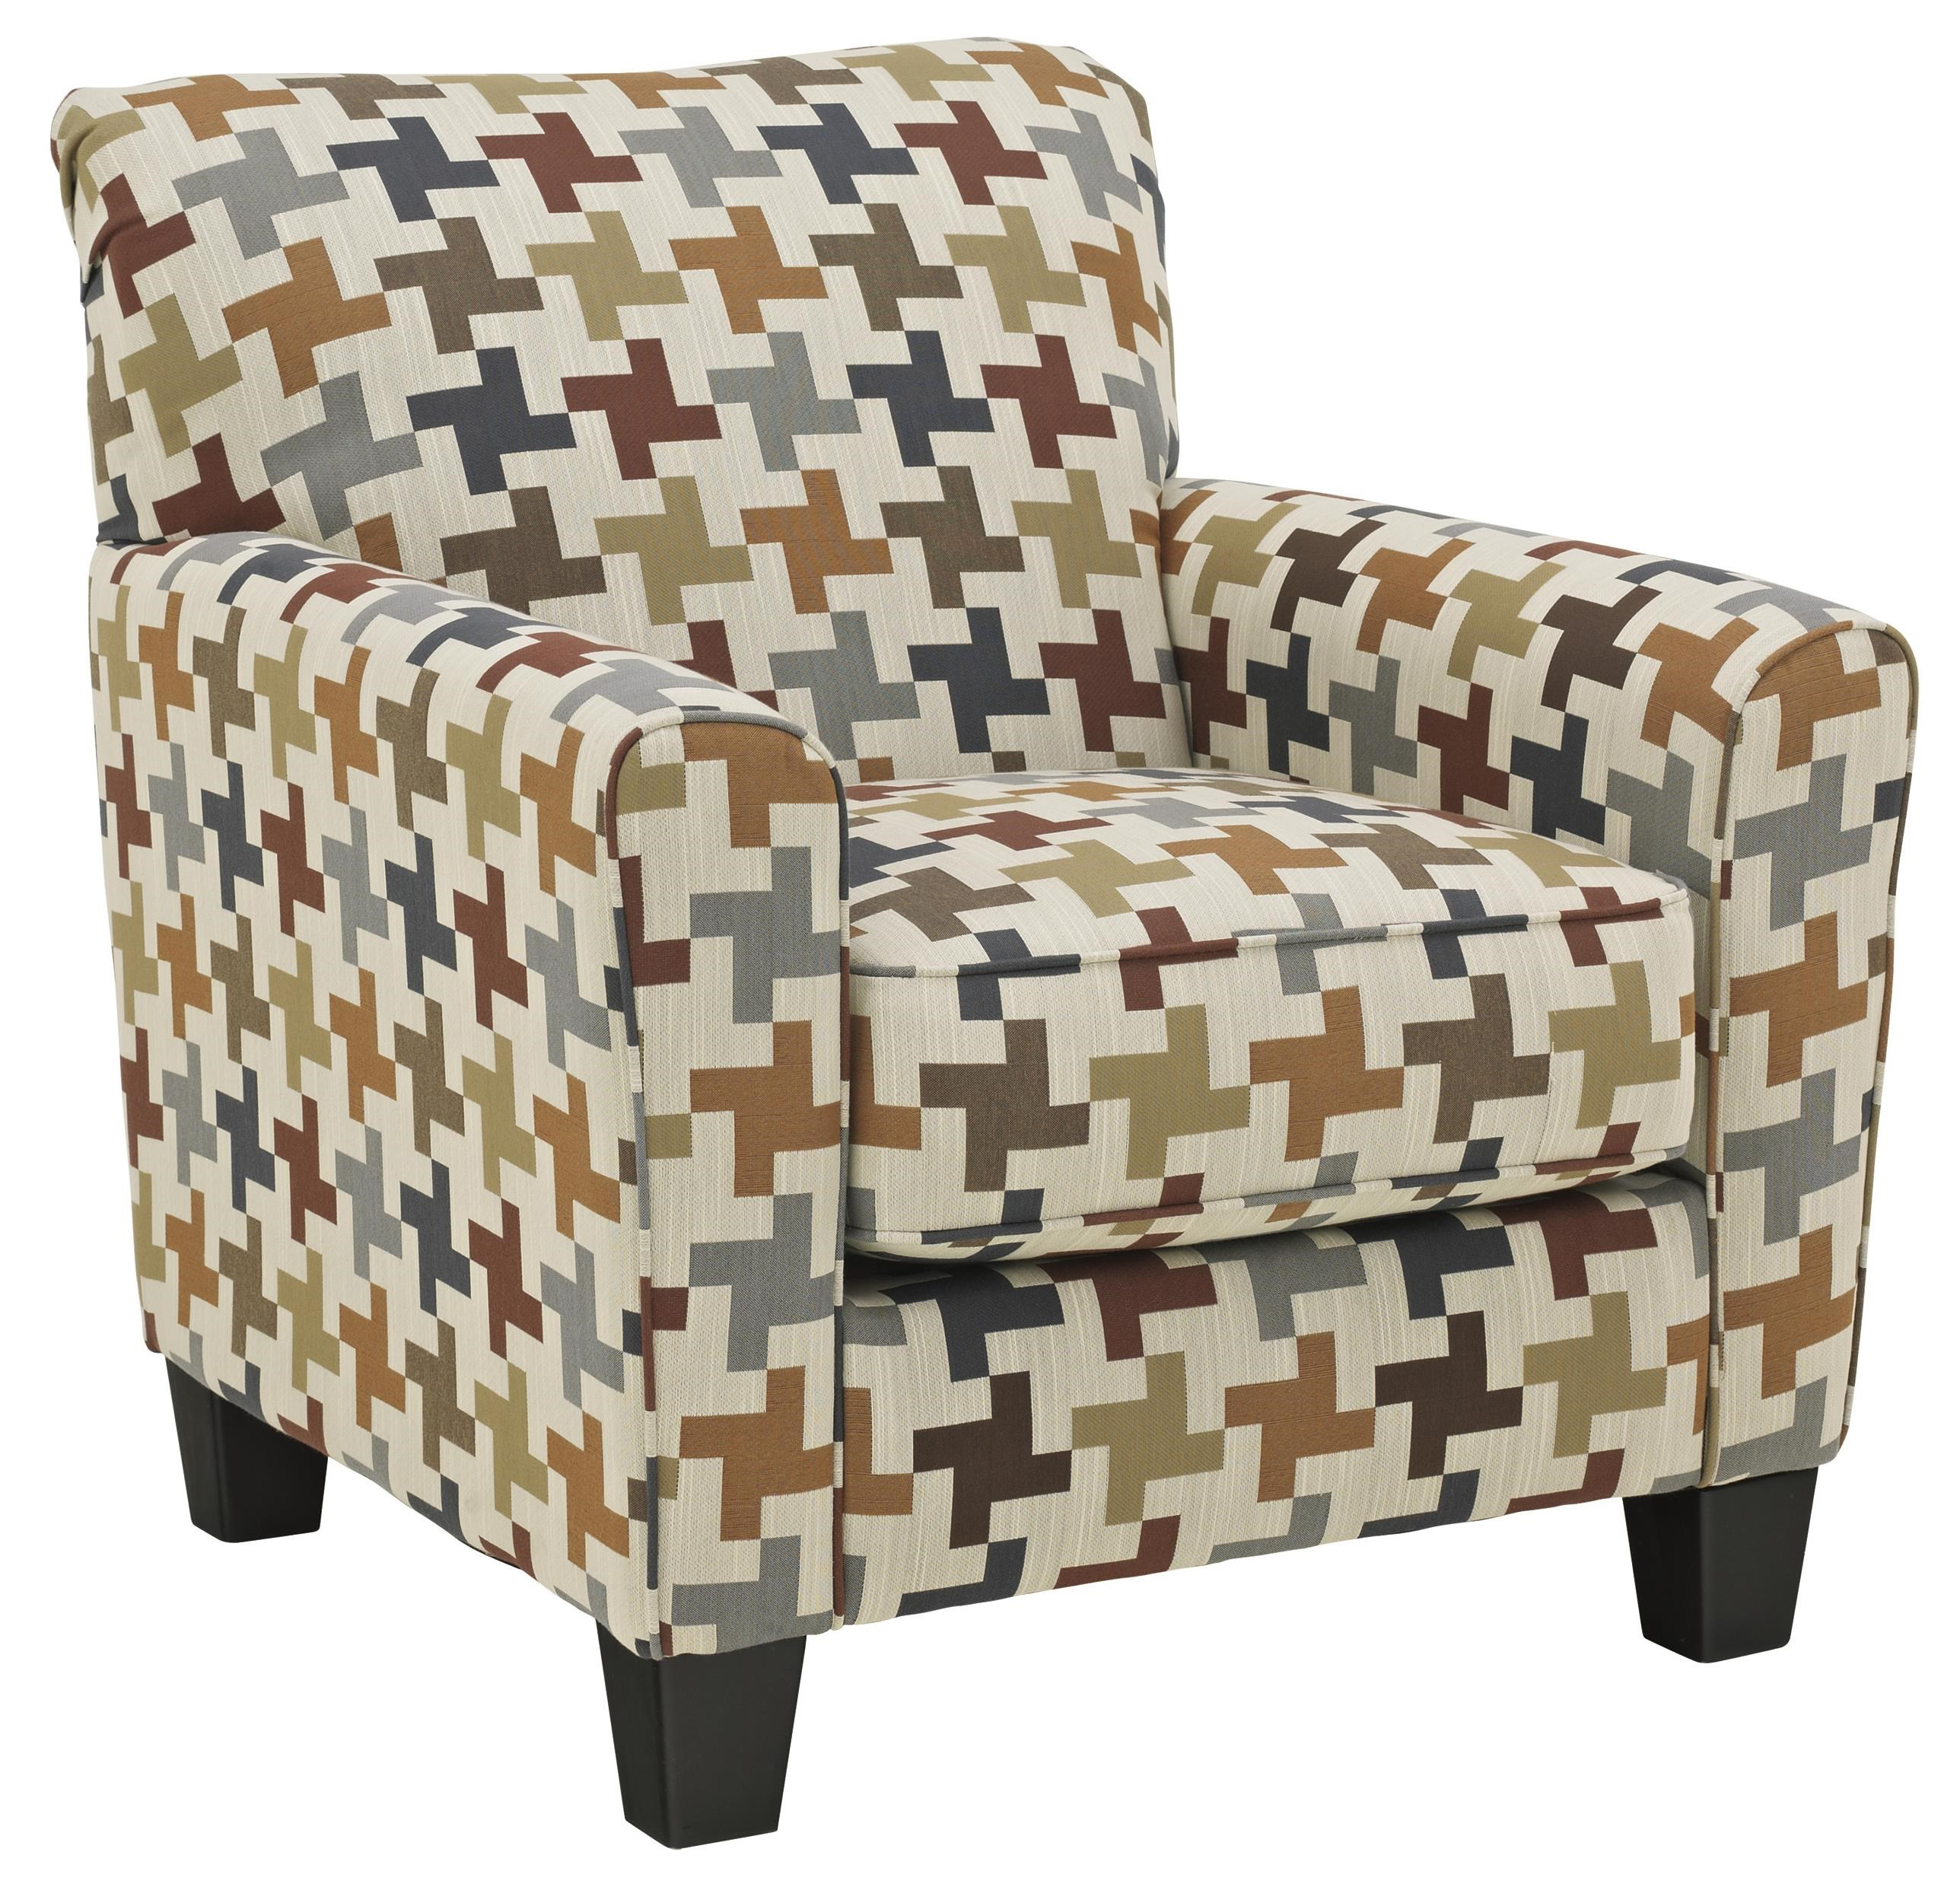 Ashley Furniture Caci Contemporary Accent Chair   Miskelly Furniture    Upholstered Chairs